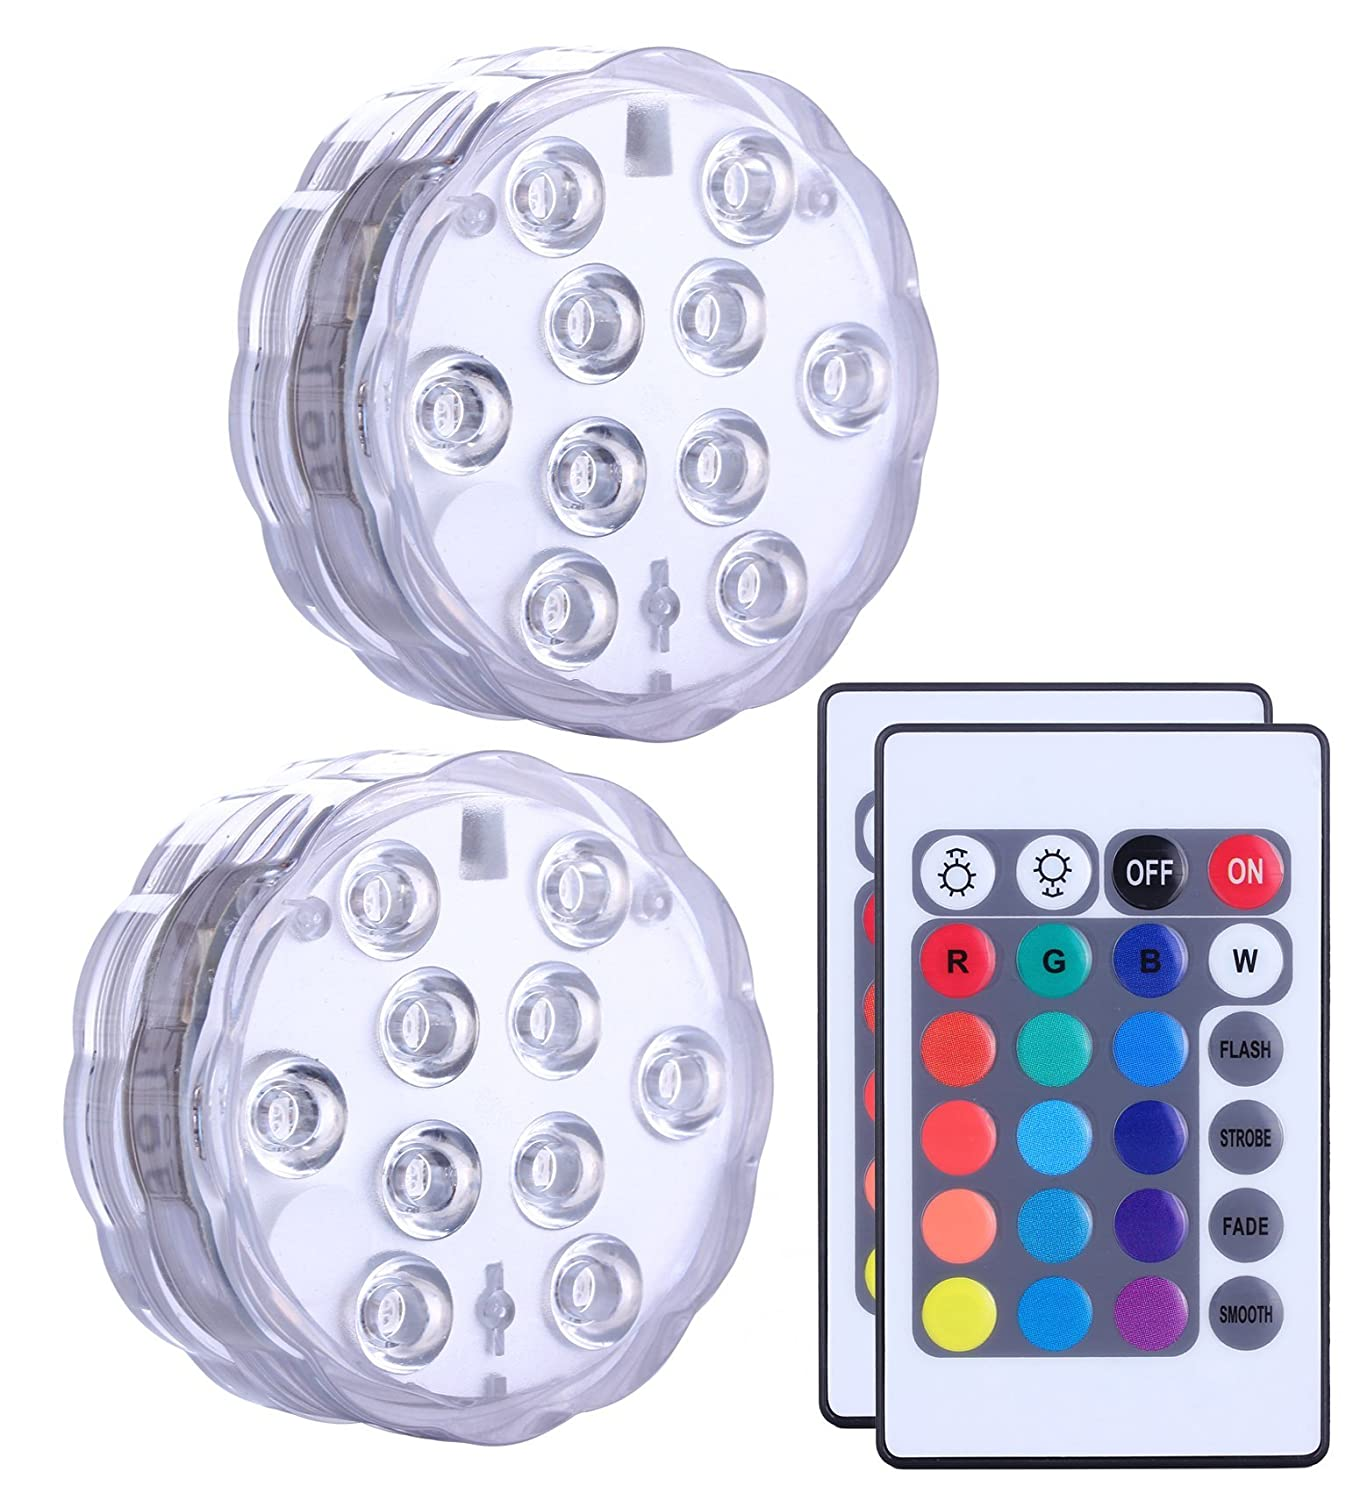 New Fashion Free Shipment Factory Vendor Super Bright Double Led Submersible Battery Powered Led Party Light For Centperiece Holiday Lighting